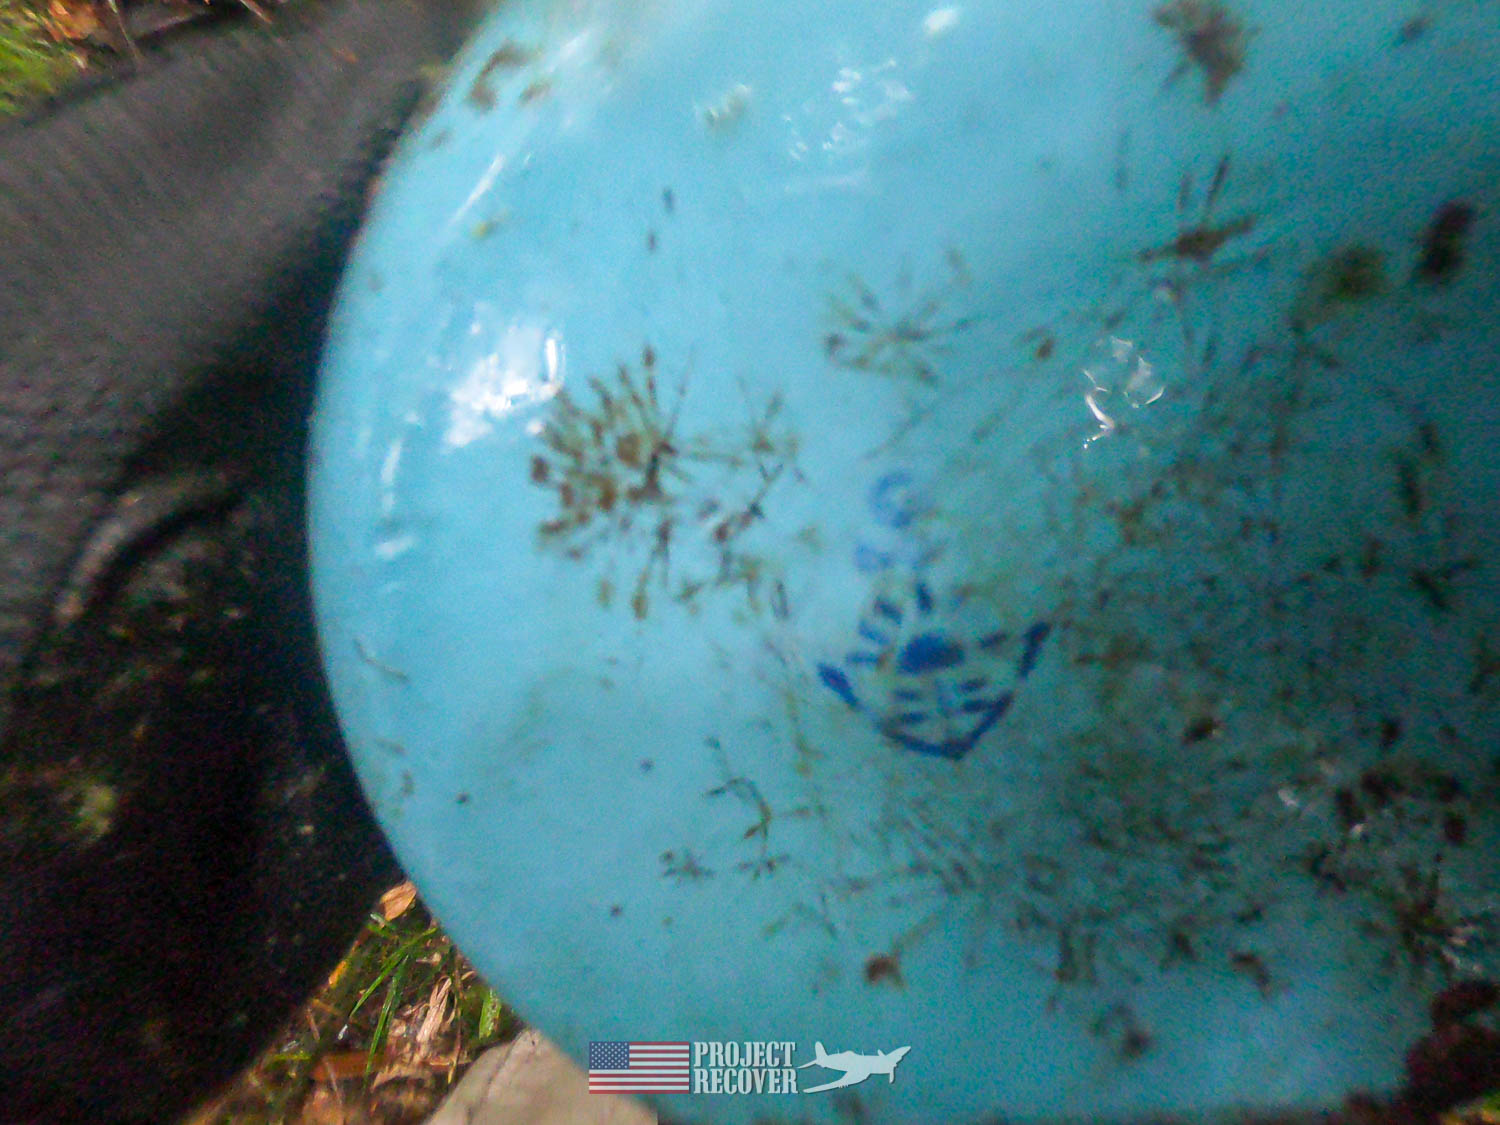 Japanese plate found in jungle - Execution of WWII POWs and Innocents in Palau - Project Recover is committed to bringing the MIA home. Photos by Harry Parker Photography.com